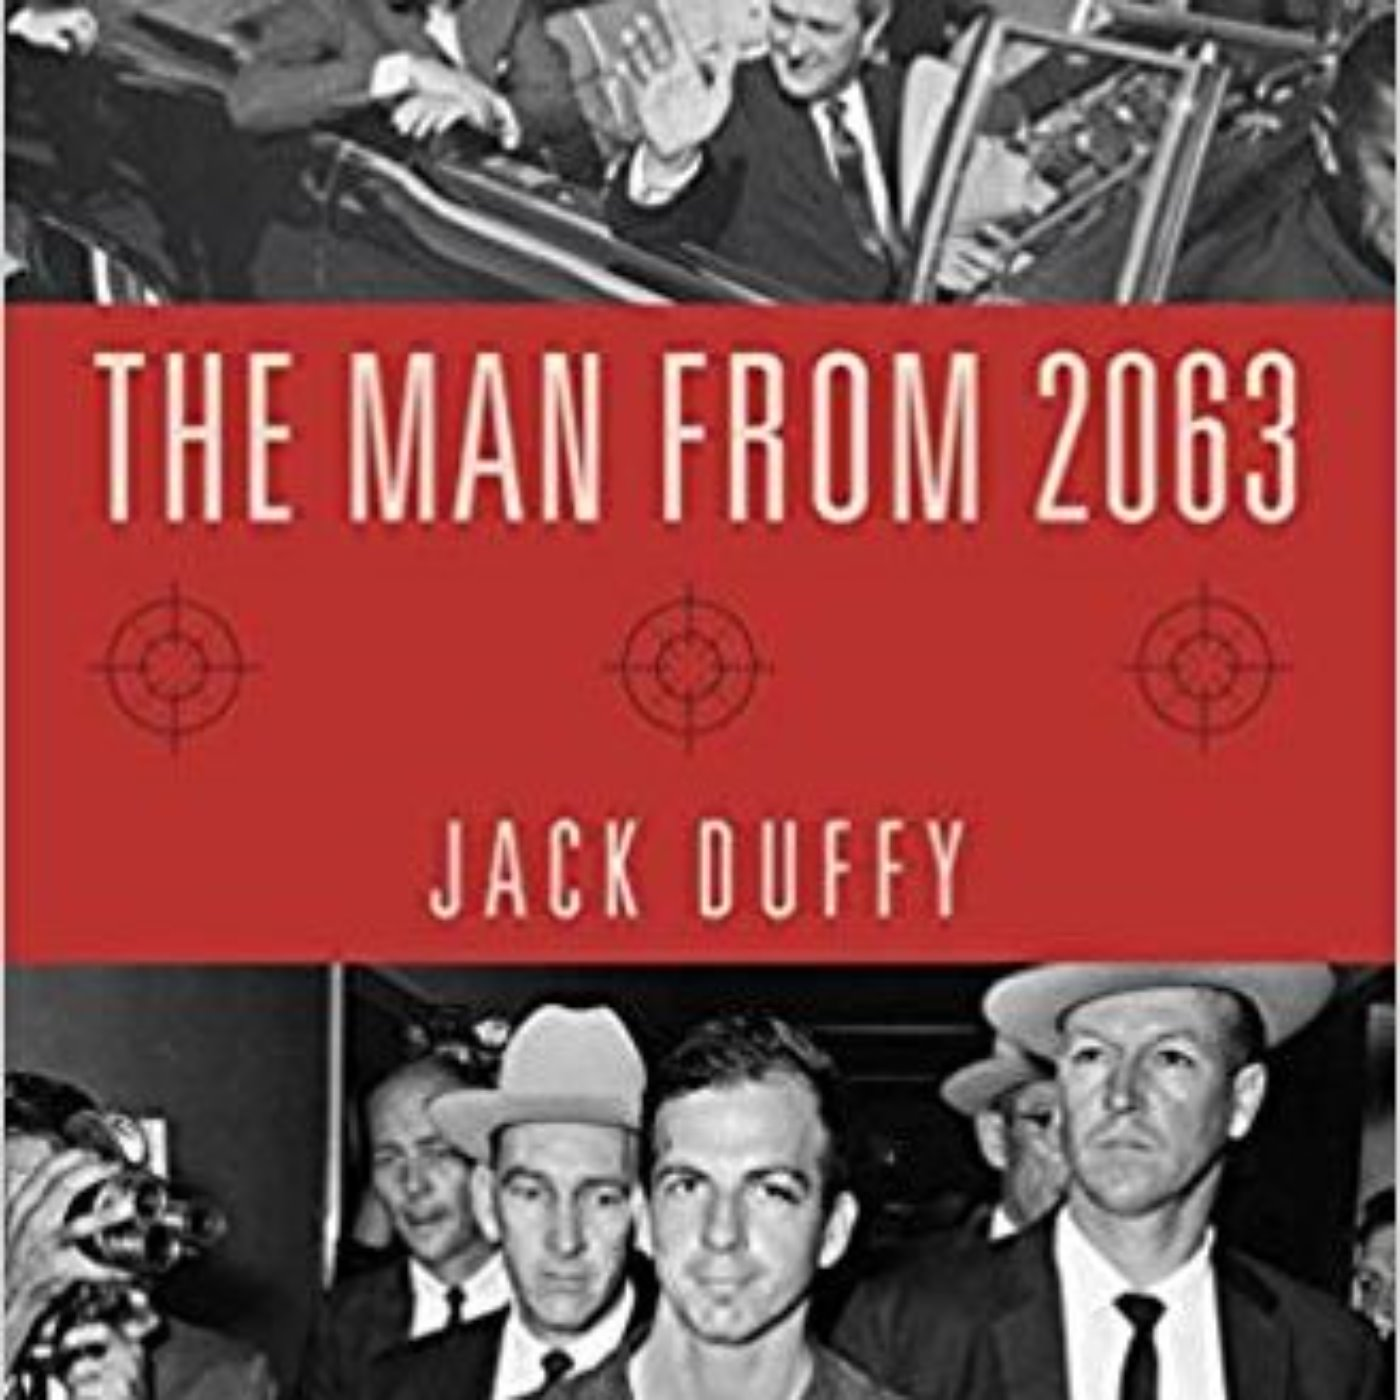 BEING THERE - JACK DUFFY (JFK ASSASSINATION SERIES 2)